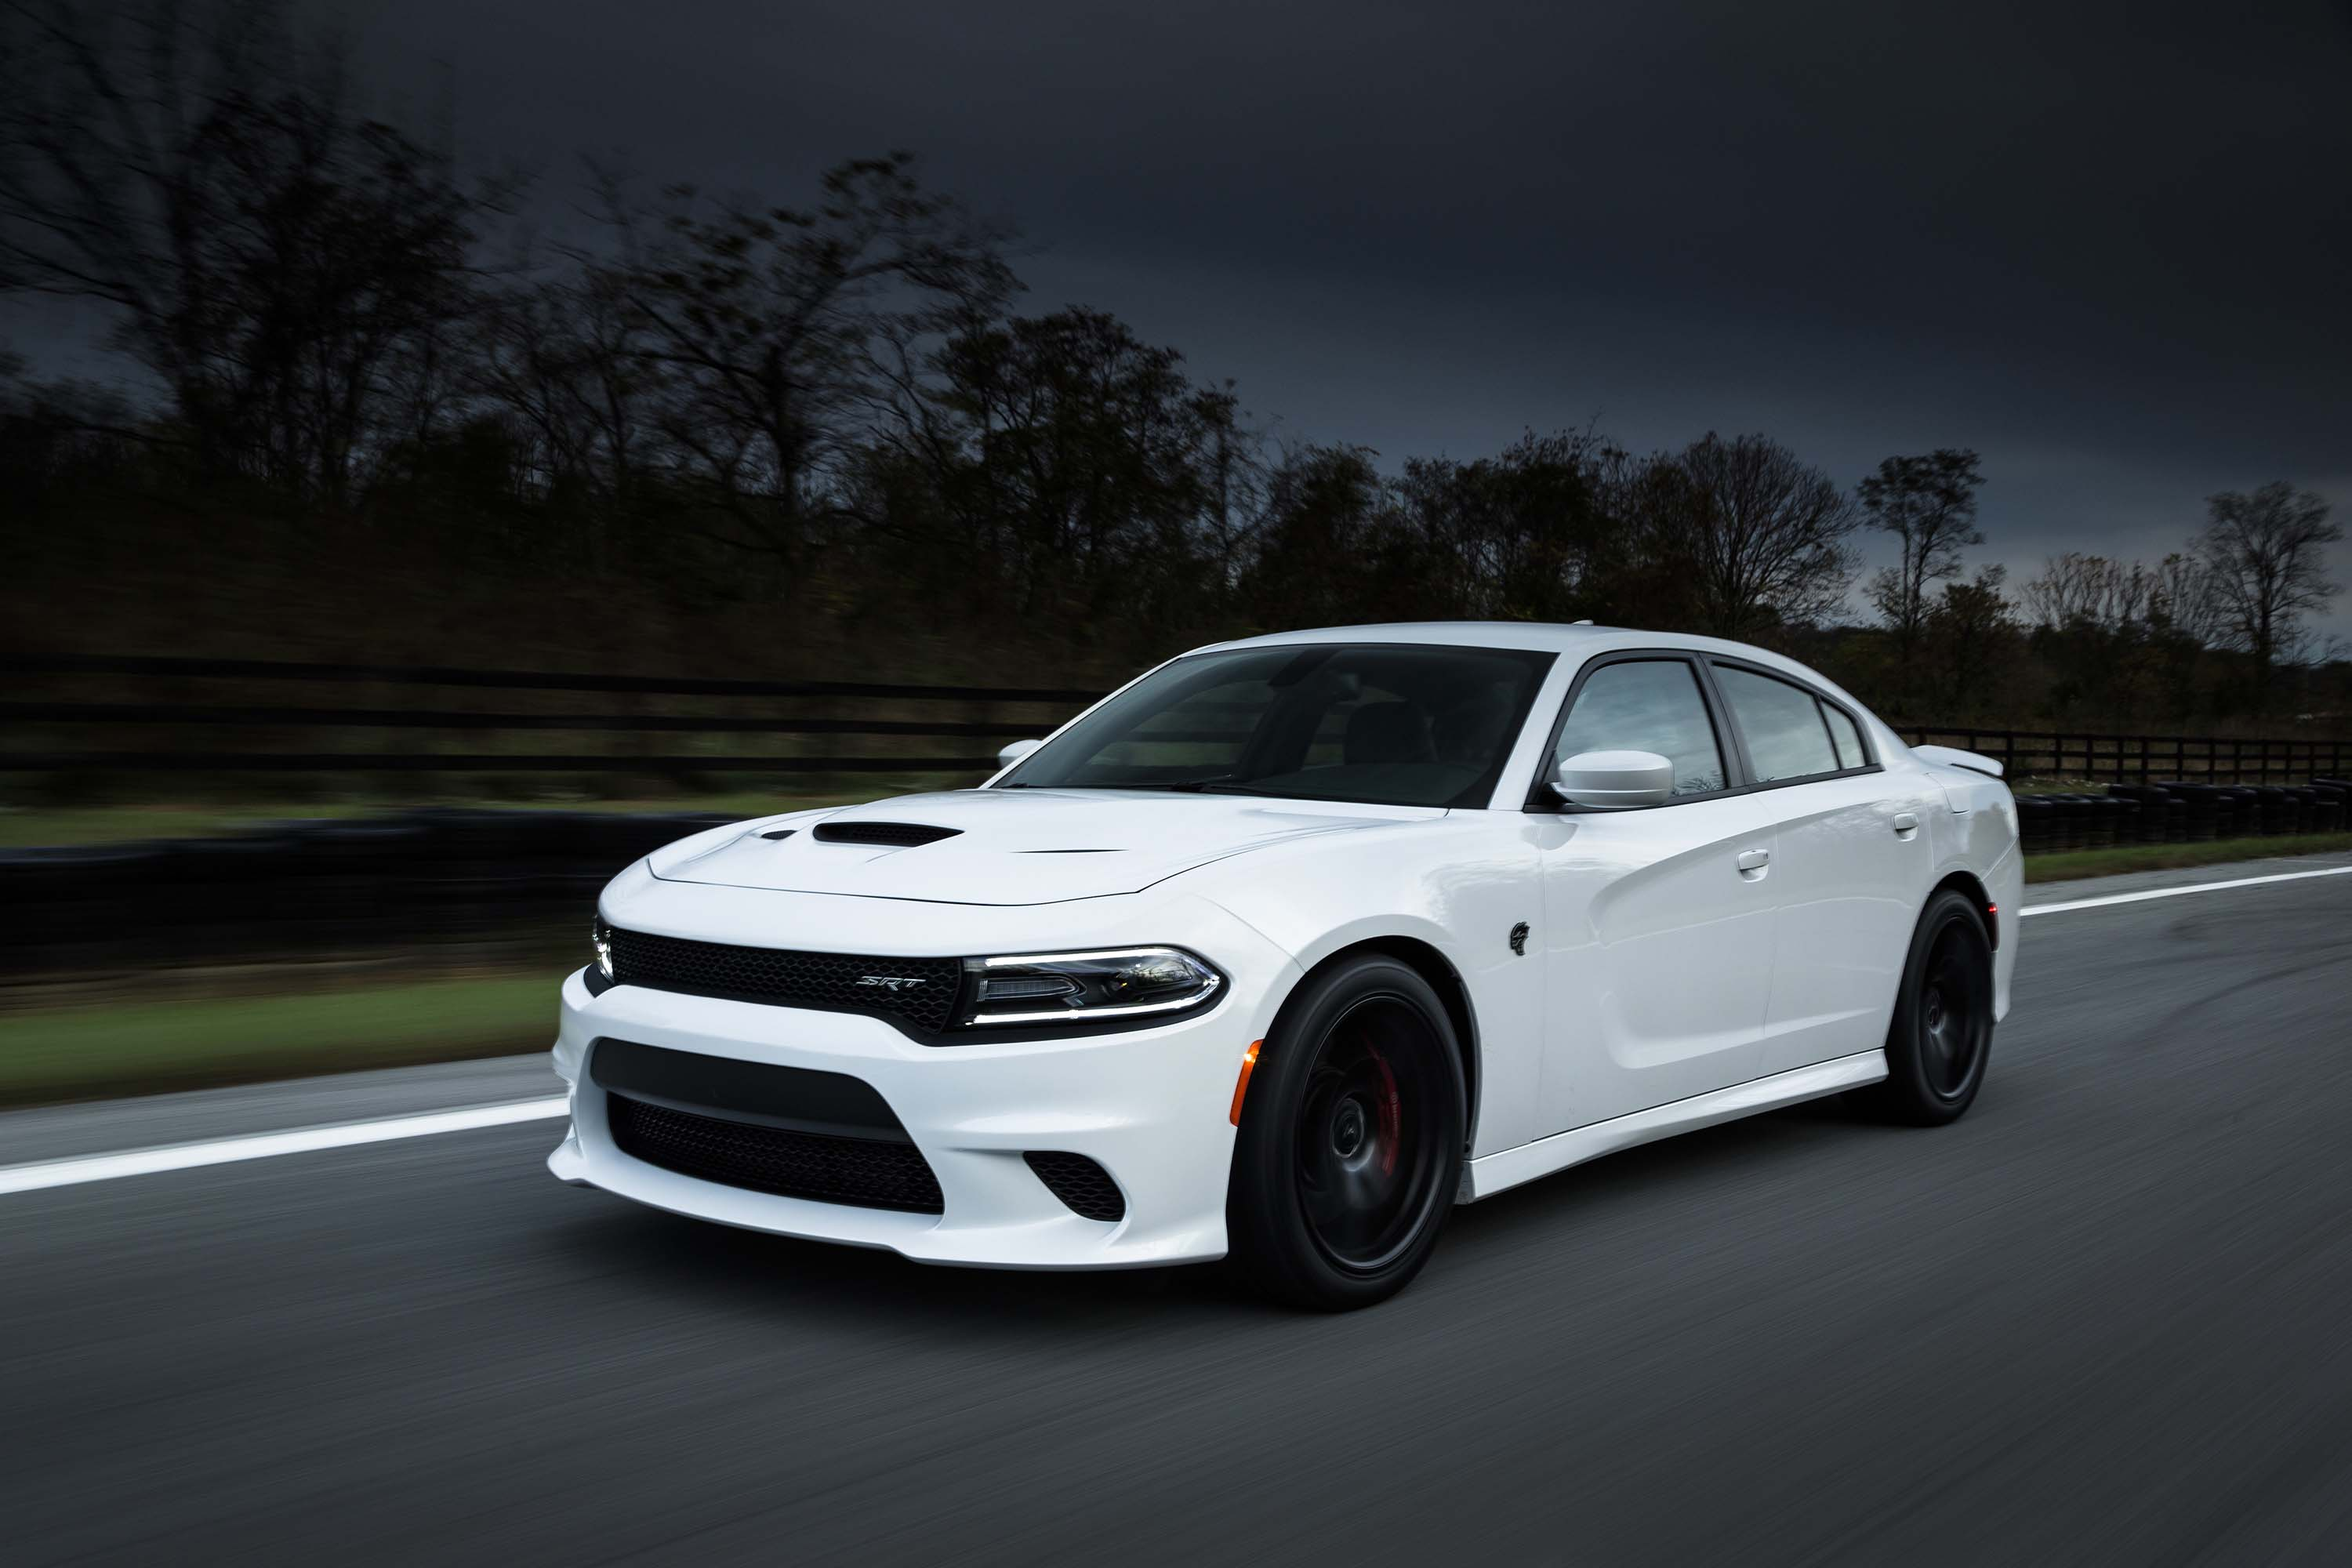 2015 Dodge Charger Srt Hellcat Iron Lion From Zion